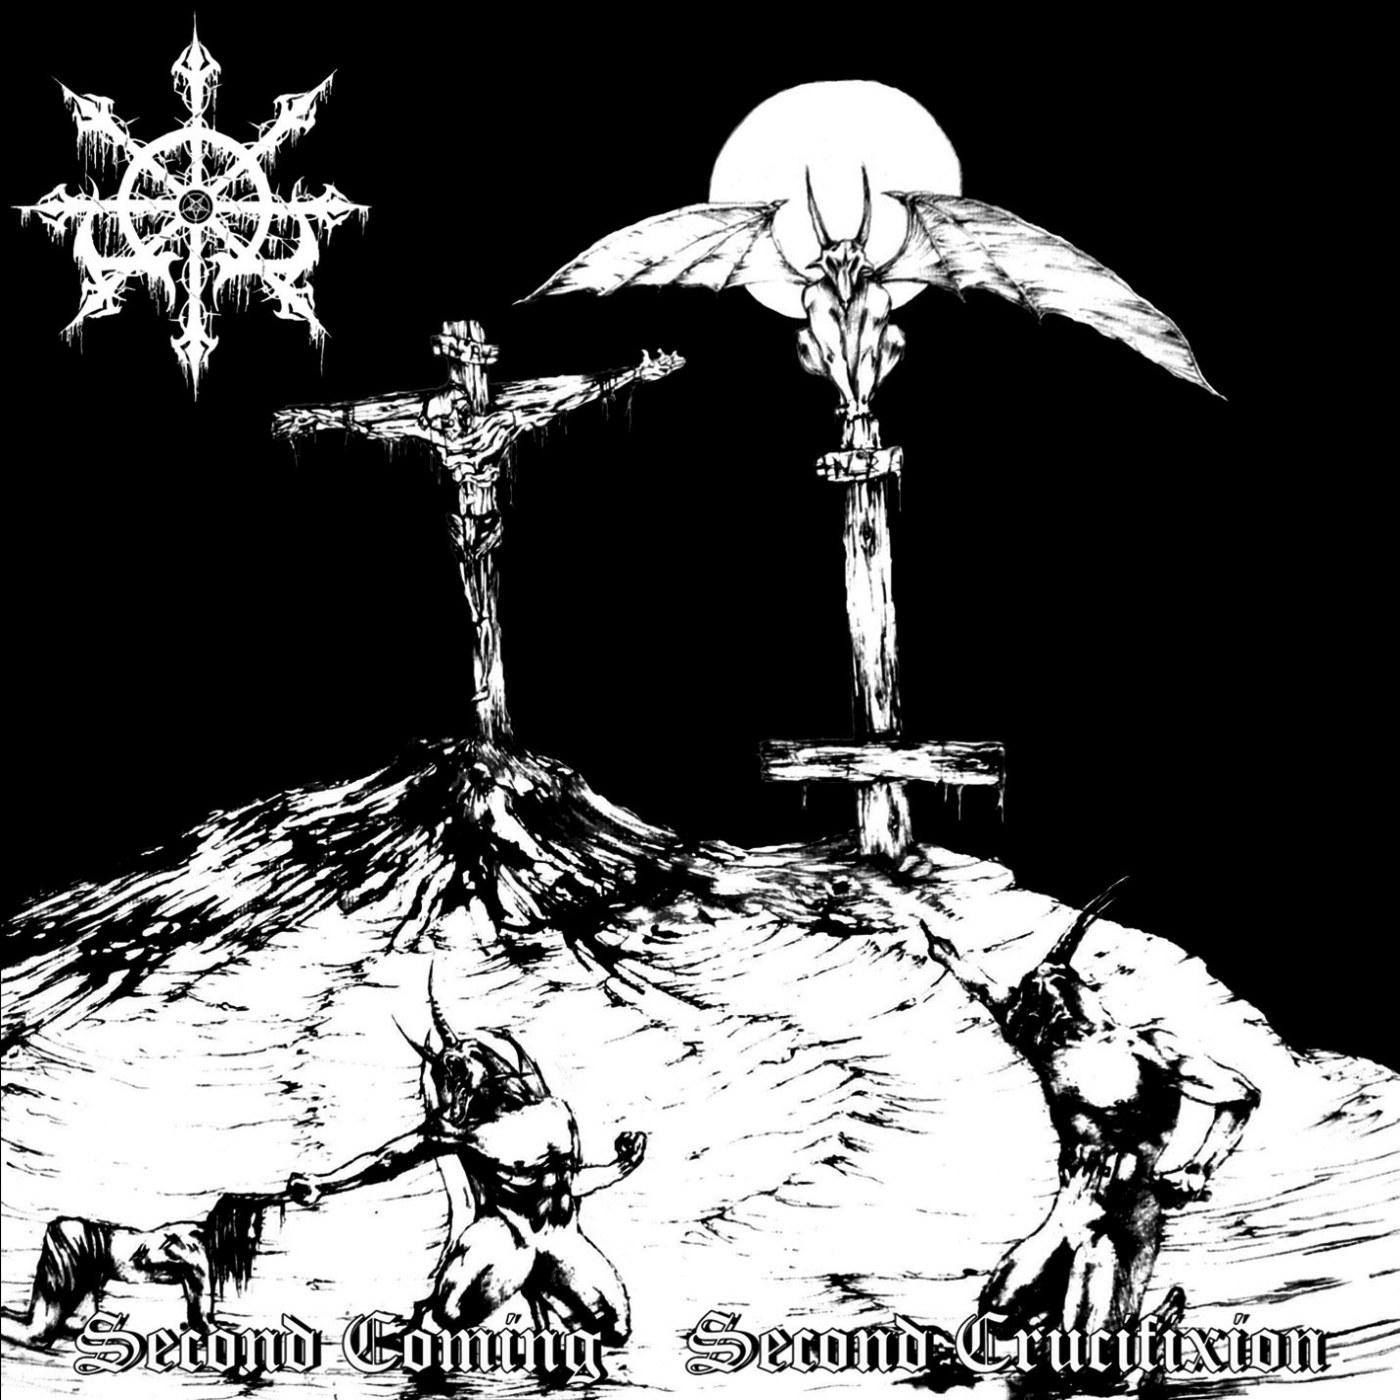 Review for Omega (GRC) - Second Coming, Second Crucifixion